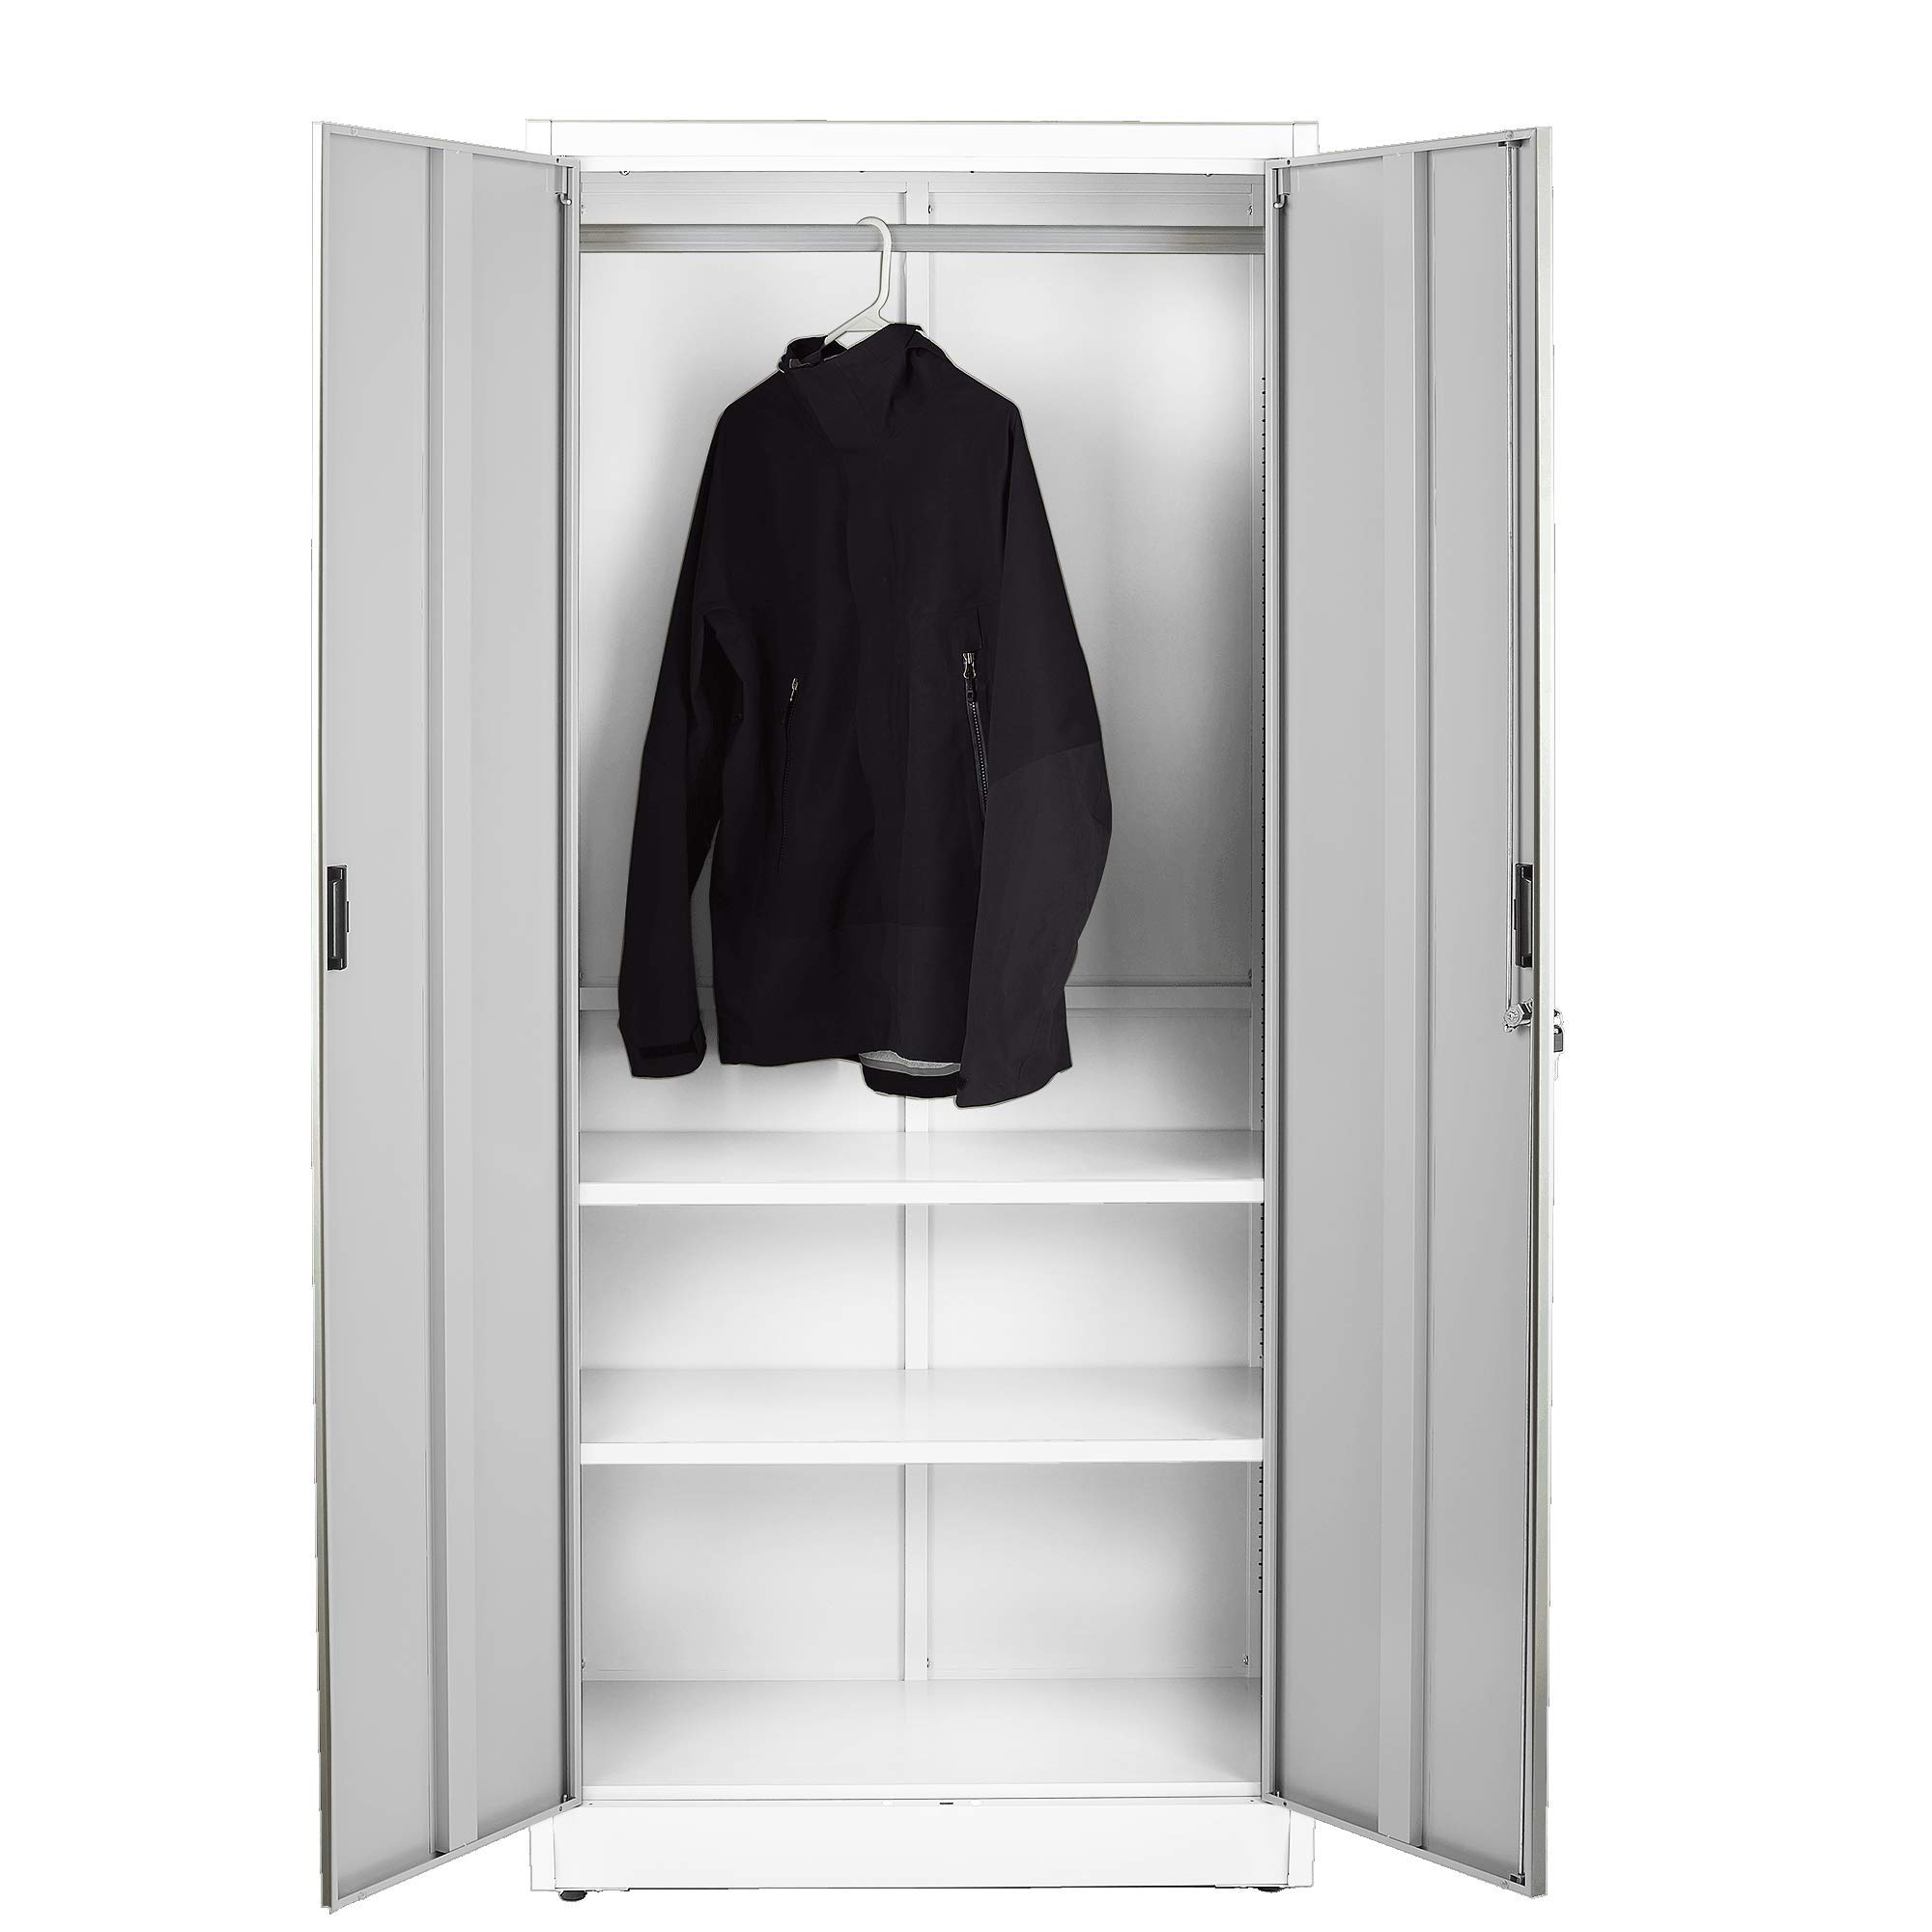 Fedmax Steel Wardrobe Closet Cabinet w/Coat Rack (3 Compartments) 70.86'' Tall x 31.5'' W x 15.75'' D (White)